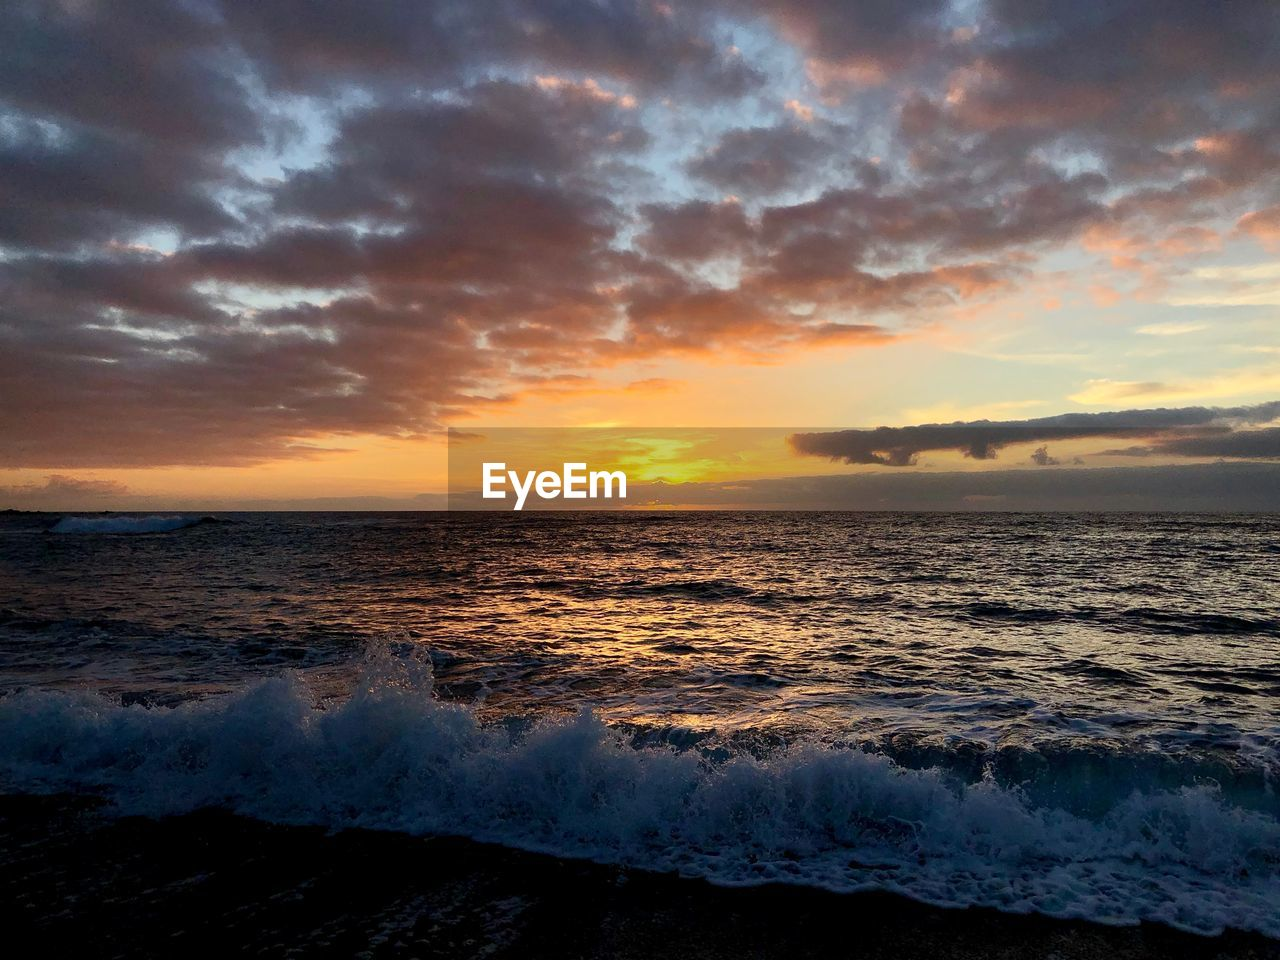 sea, sunset, water, sky, cloud - sky, horizon, horizon over water, beauty in nature, scenics - nature, beach, wave, land, motion, idyllic, tranquility, orange color, no people, tranquil scene, nature, outdoors